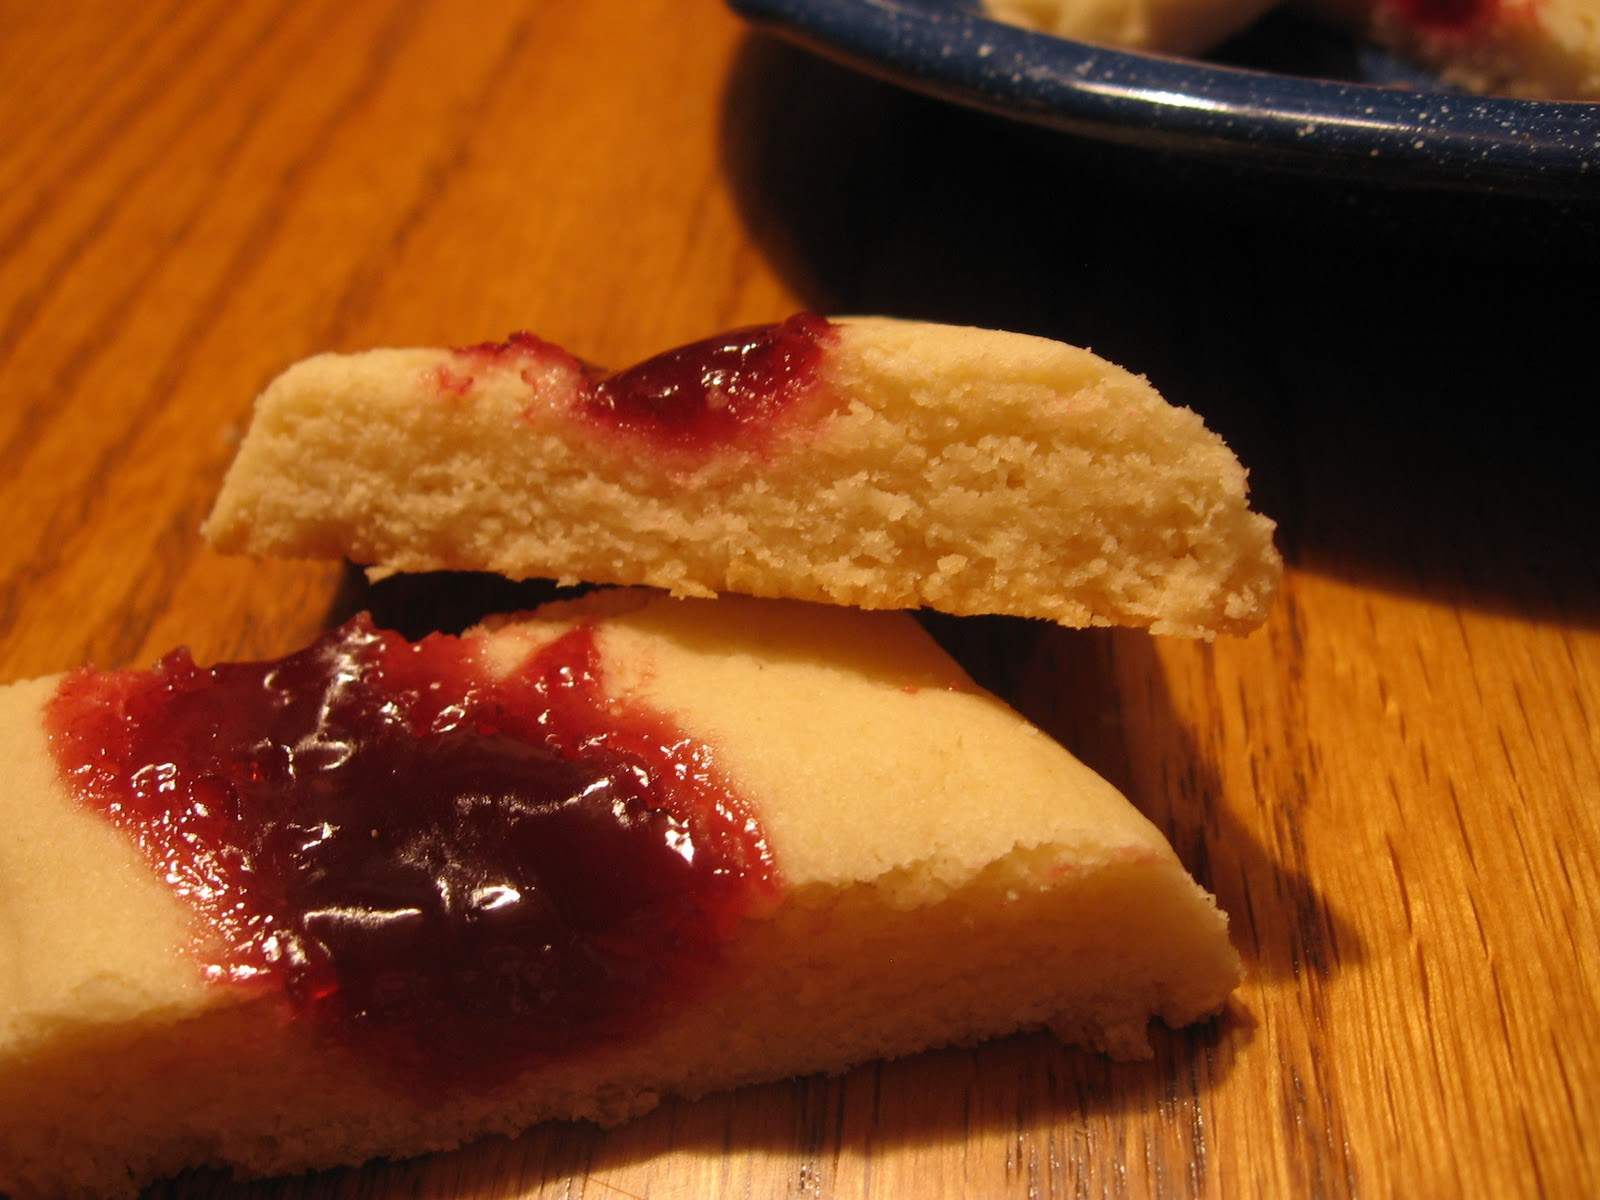 ... split second! They were also REALLY good. Shortbread cookies with jam